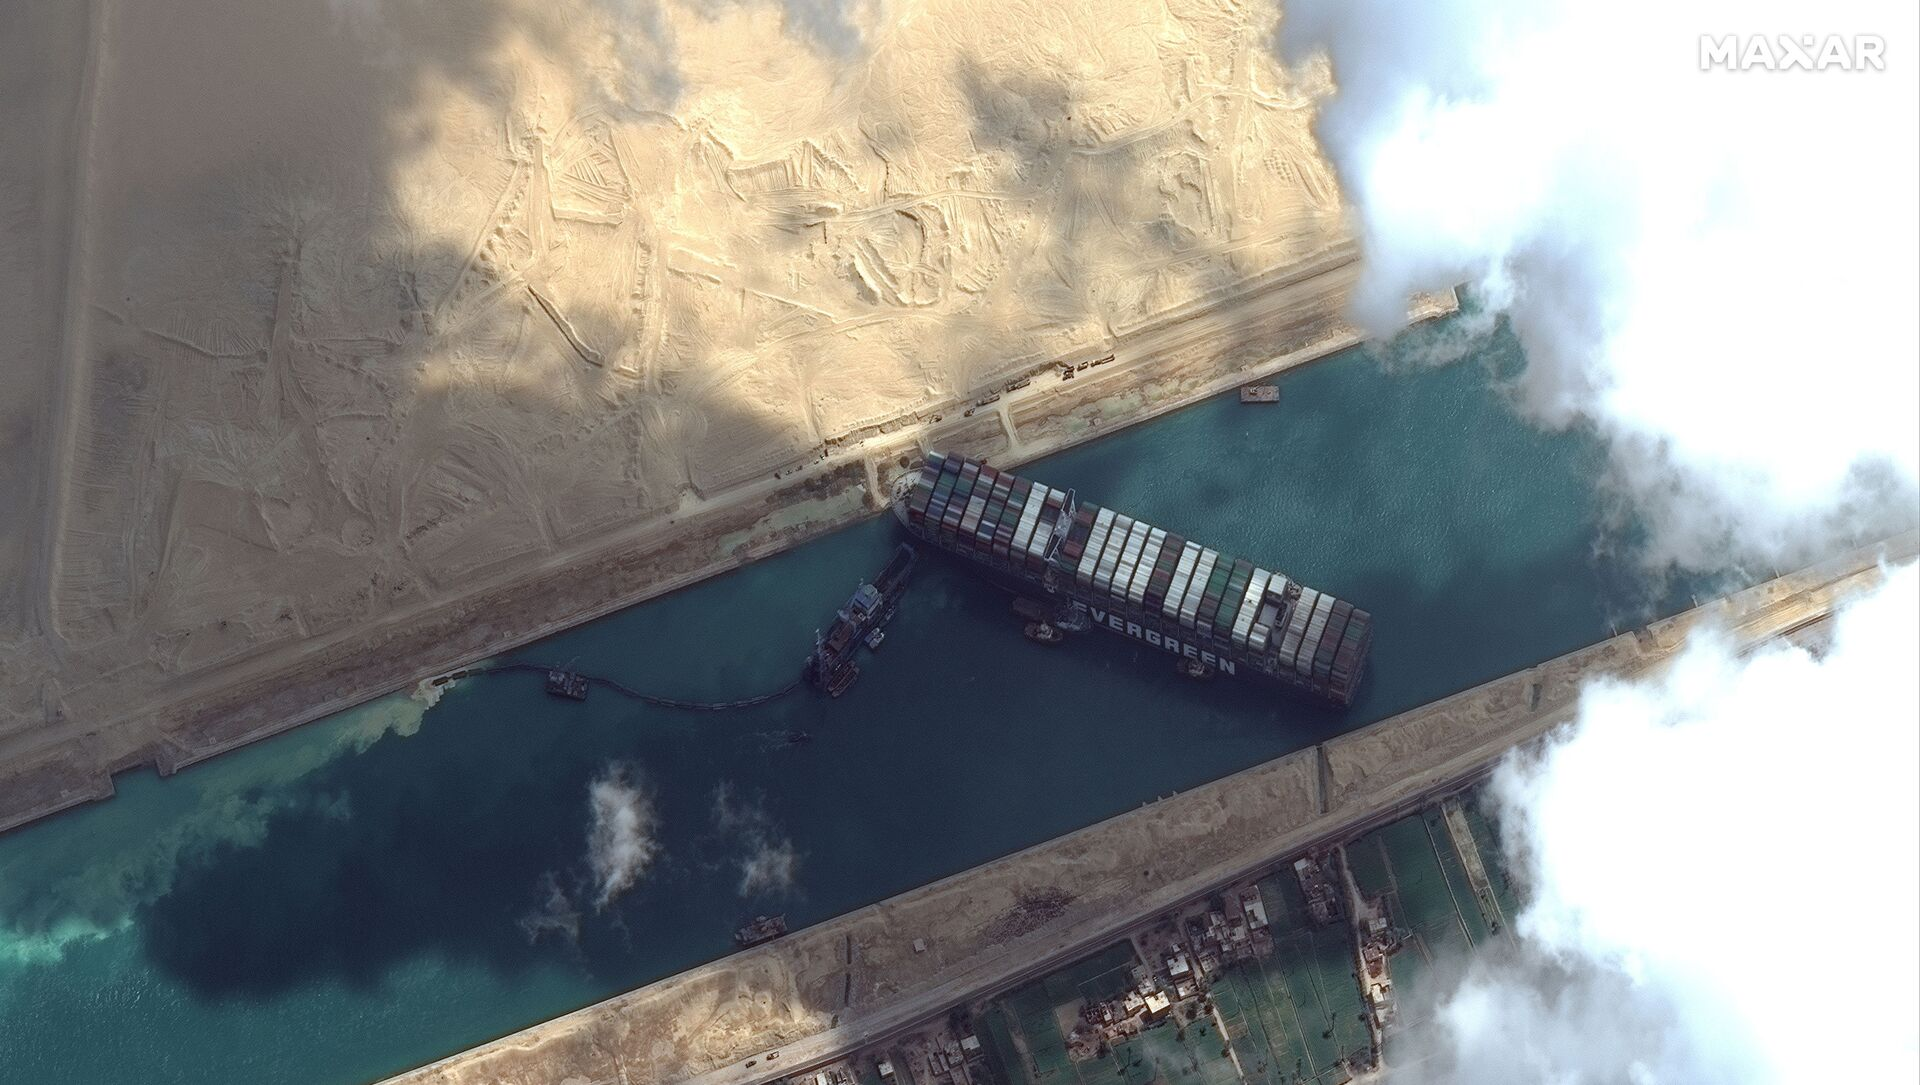 Ever Given container ship is pictured in Suez Canal in this Maxar Technologies satellite image taken on March 26, 2021 - Sputnik Italia, 1920, 28.03.2021